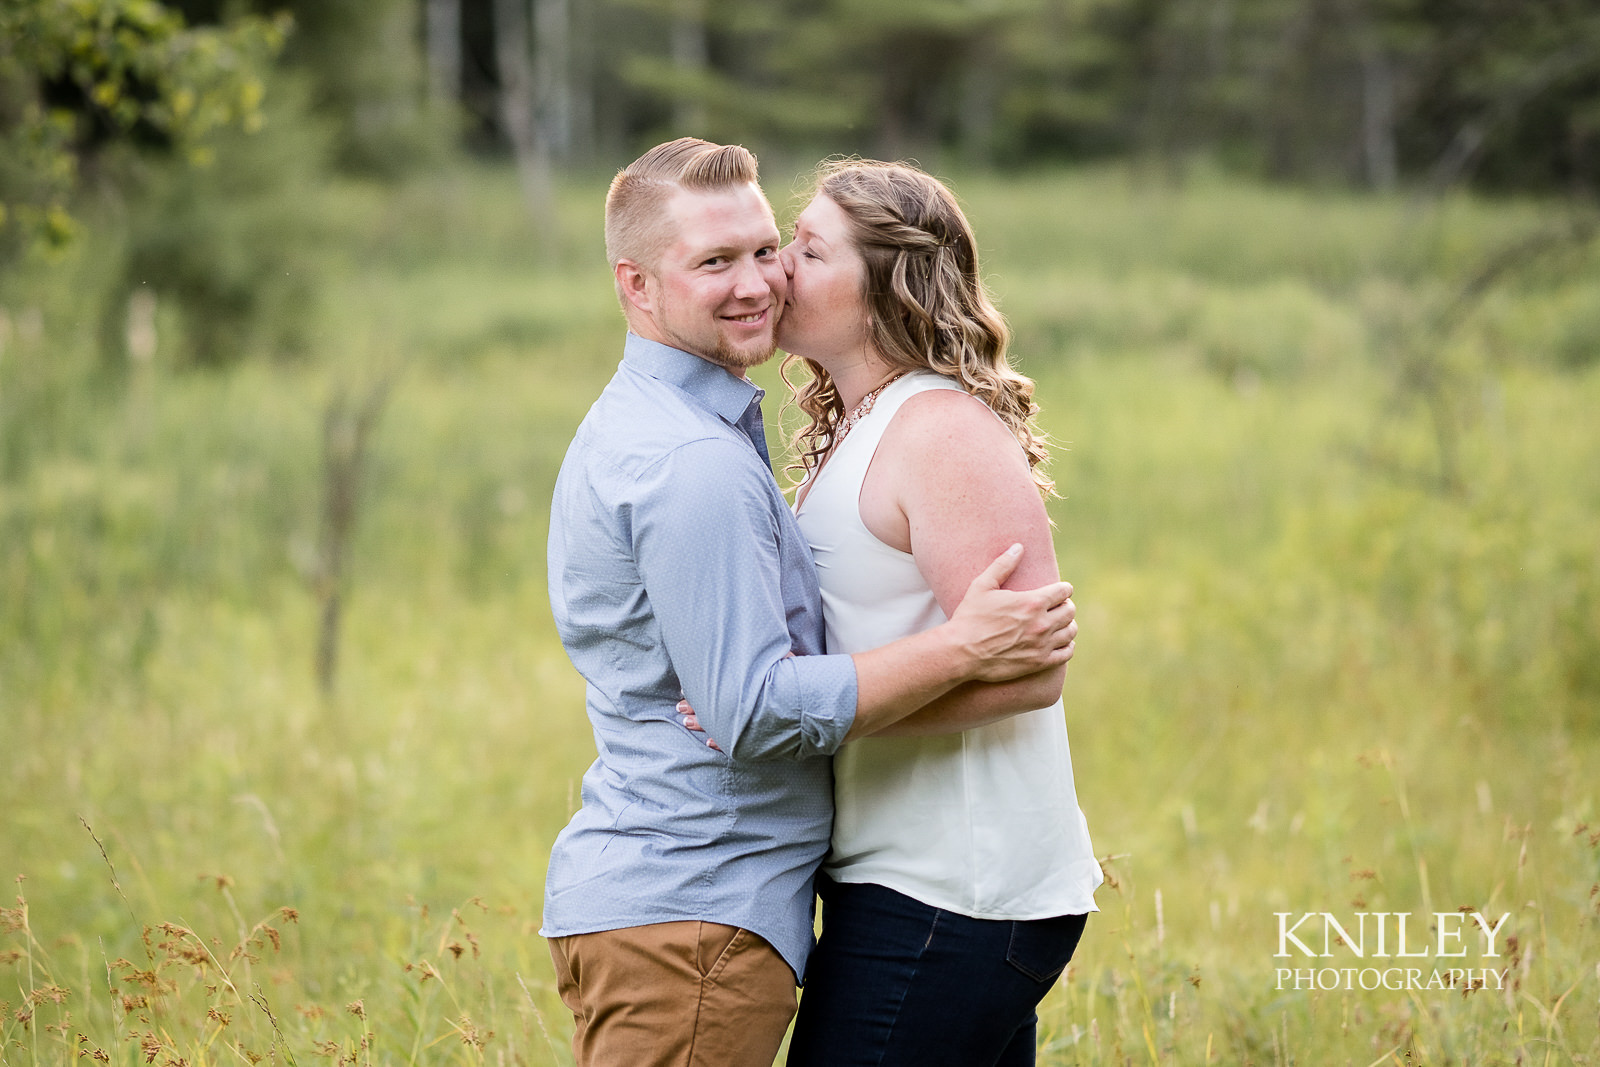 036 - Letchworth State Park Engagement Pictures -XT2A5974.jpg